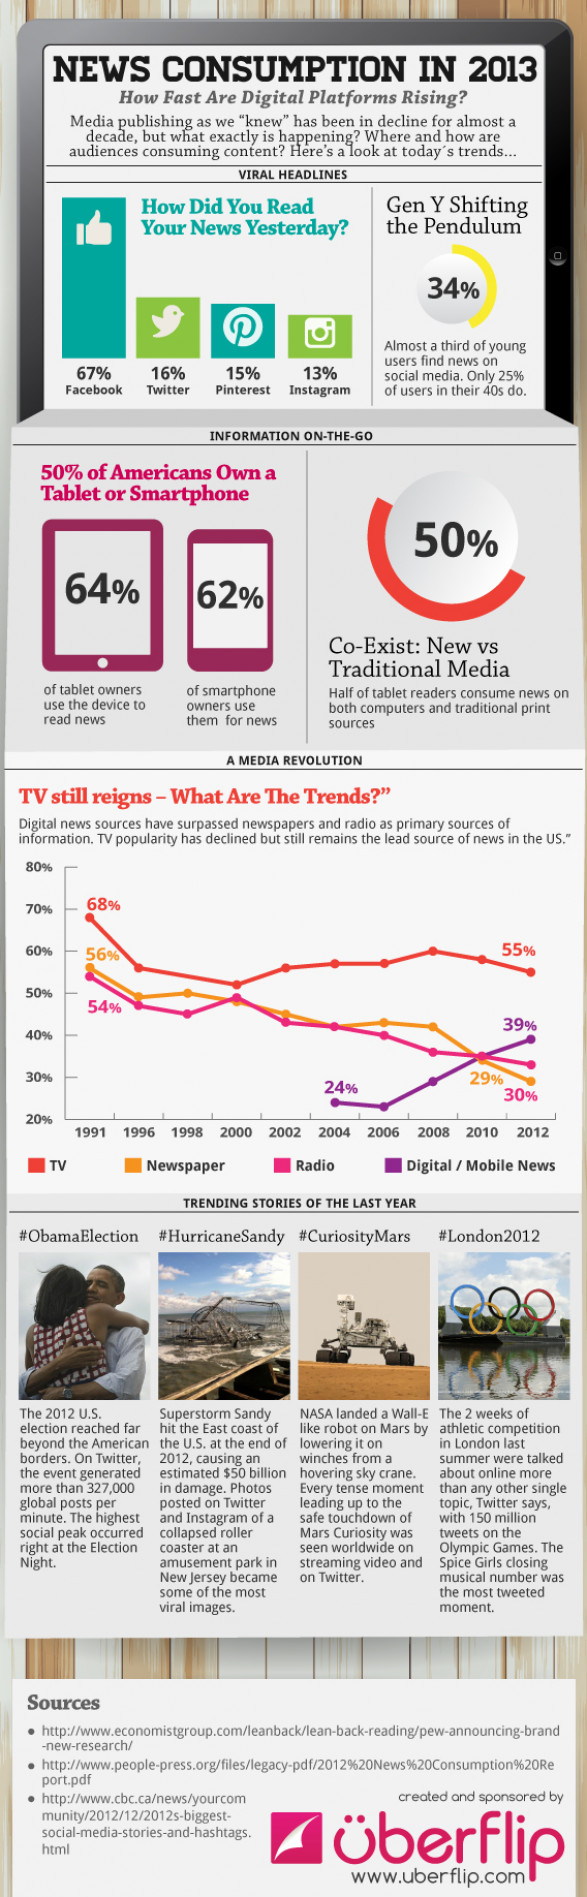 How Do Americans Get Their News in 2013?